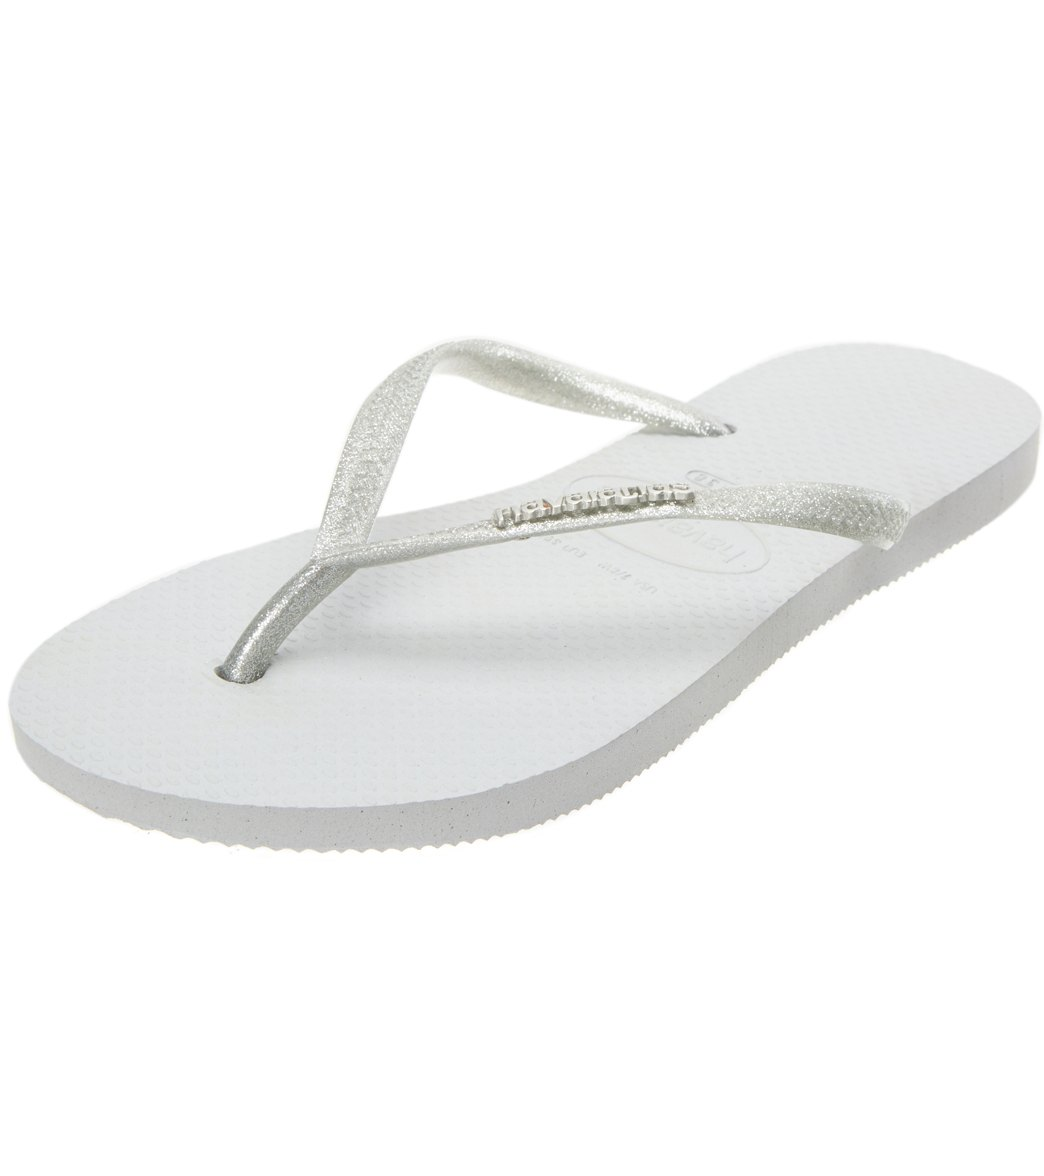 6b96704fcc315e Havaianas Women s Slim Logo Metallic Flip Flop at SwimOutlet.com